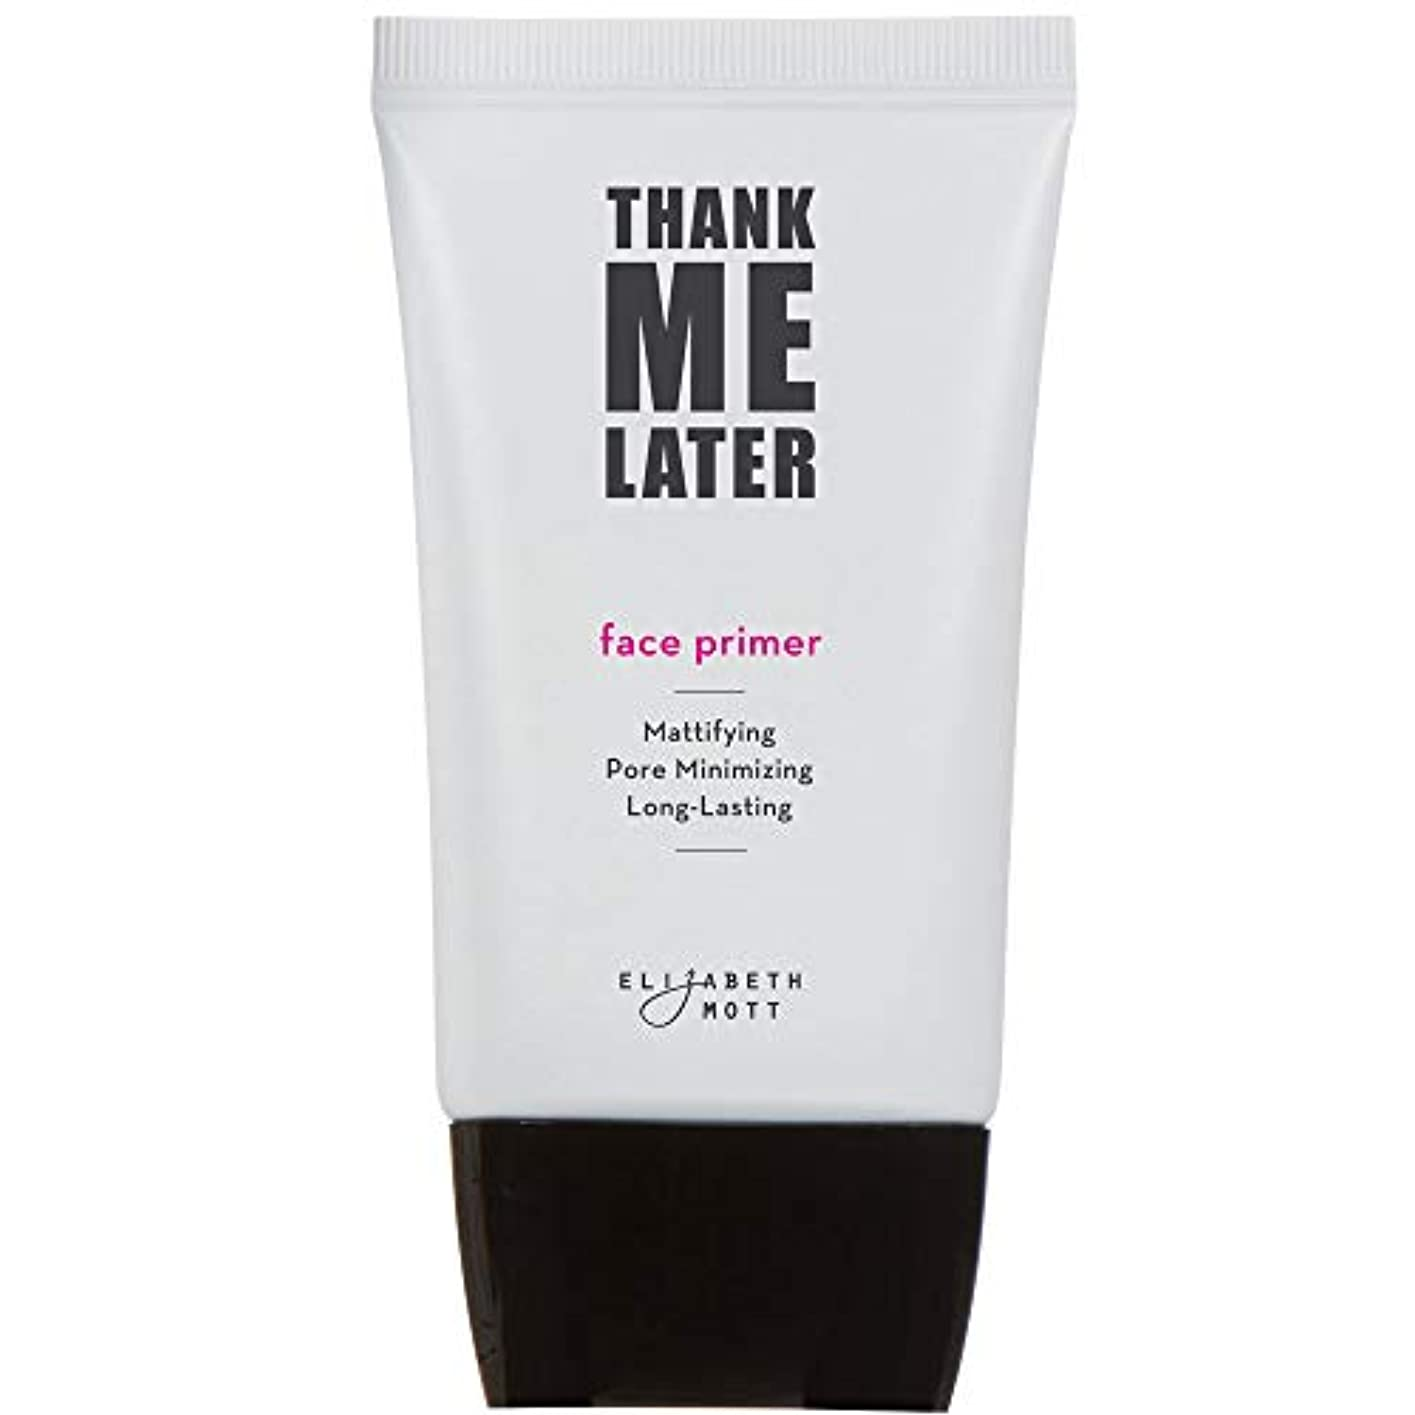 さようなら短命の間にThank Me Later Primer. Paraben-free and Cruelty Free. … Face Primer (30G) フェイスプライマー(下地)